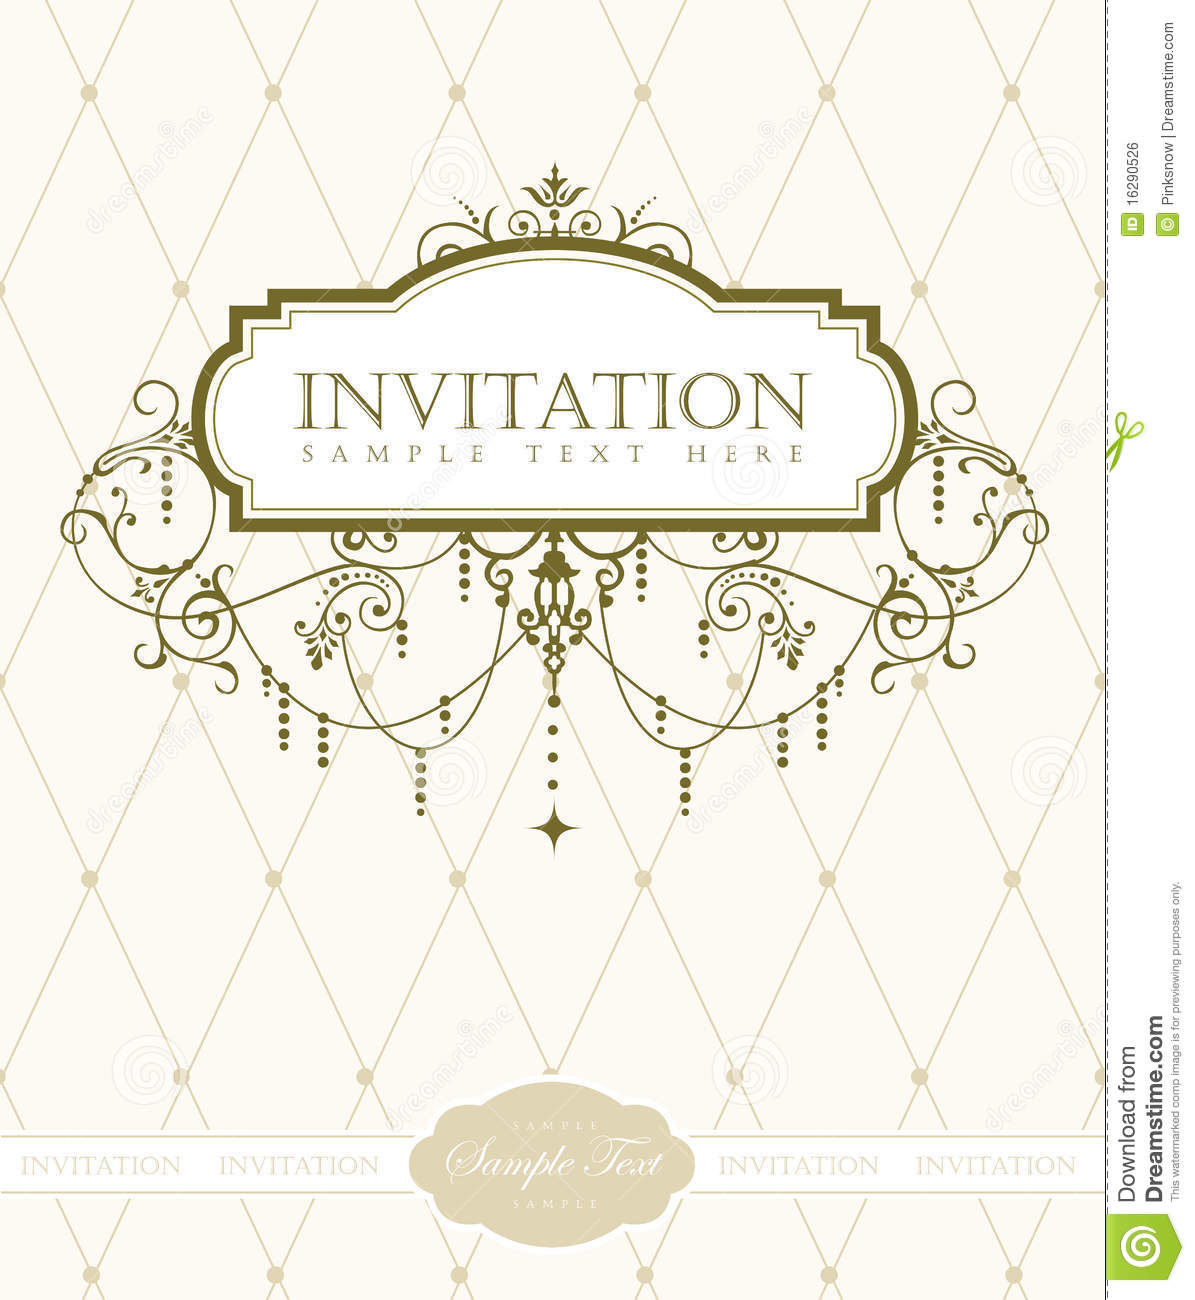 Free Printable Baseball Party Invitations  Web design